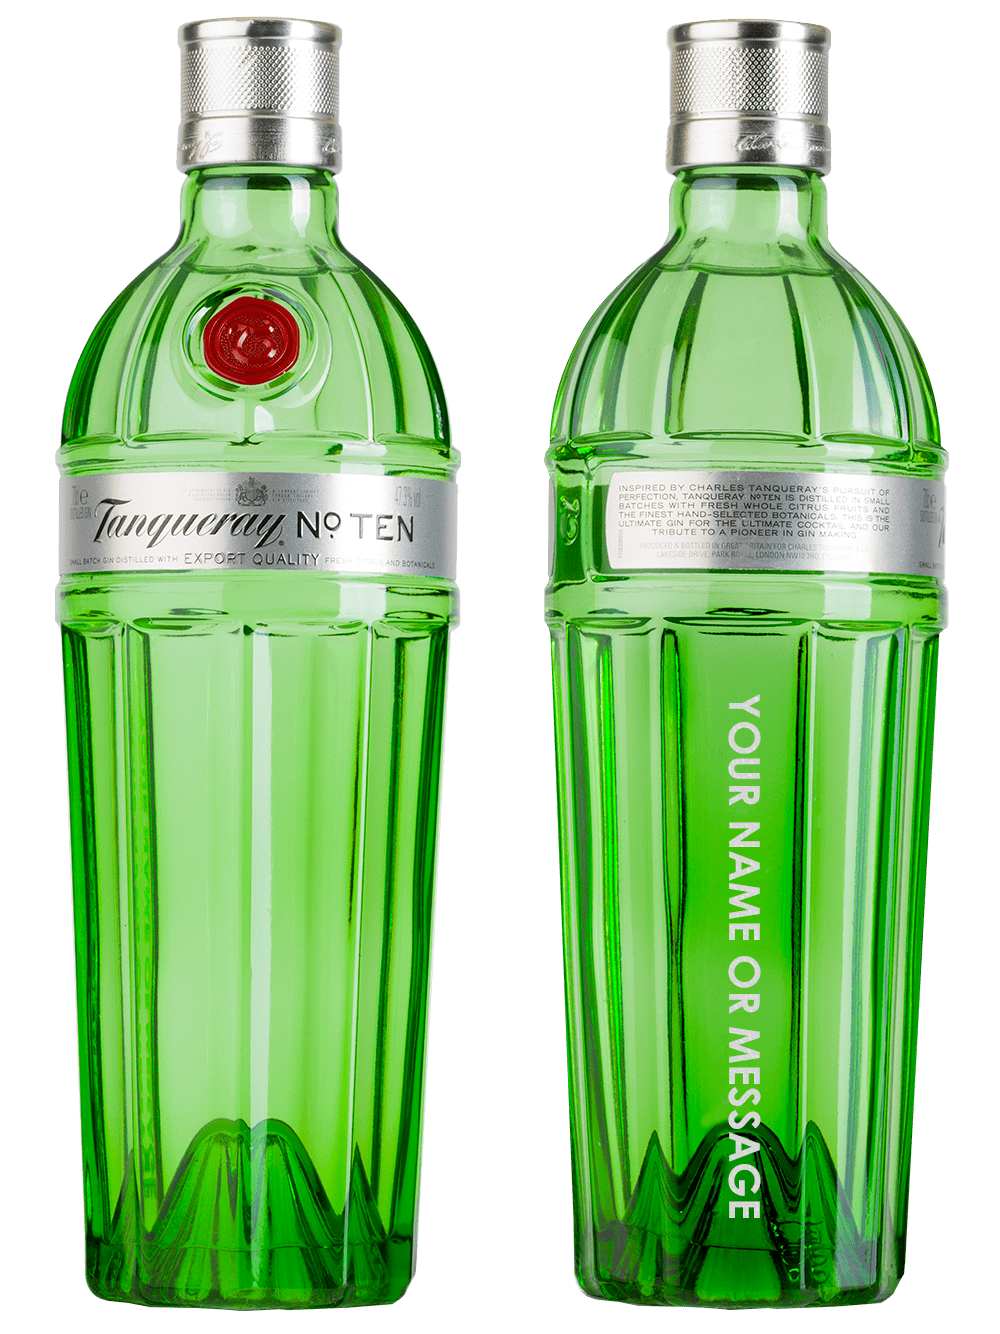 Signature - Gin Tanqueray No. Ten GET IT INKD